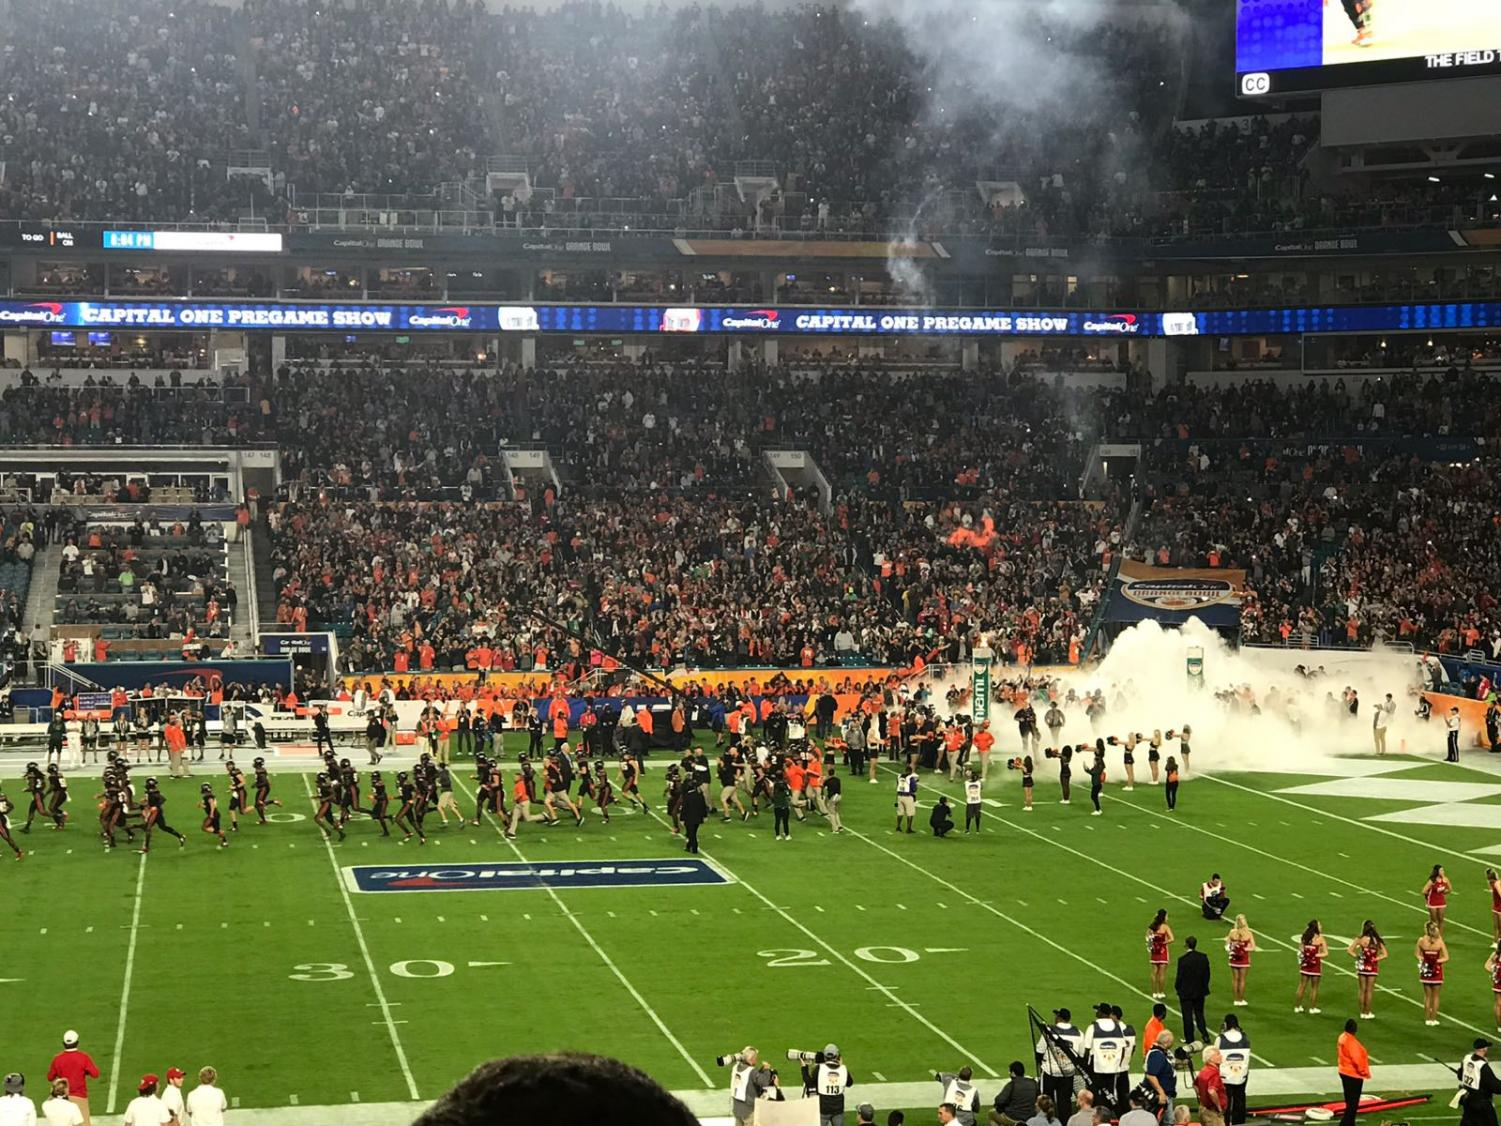 The Canes swarm the field for the start of the Capital One Orange Bowl at Hard Rock Stadium